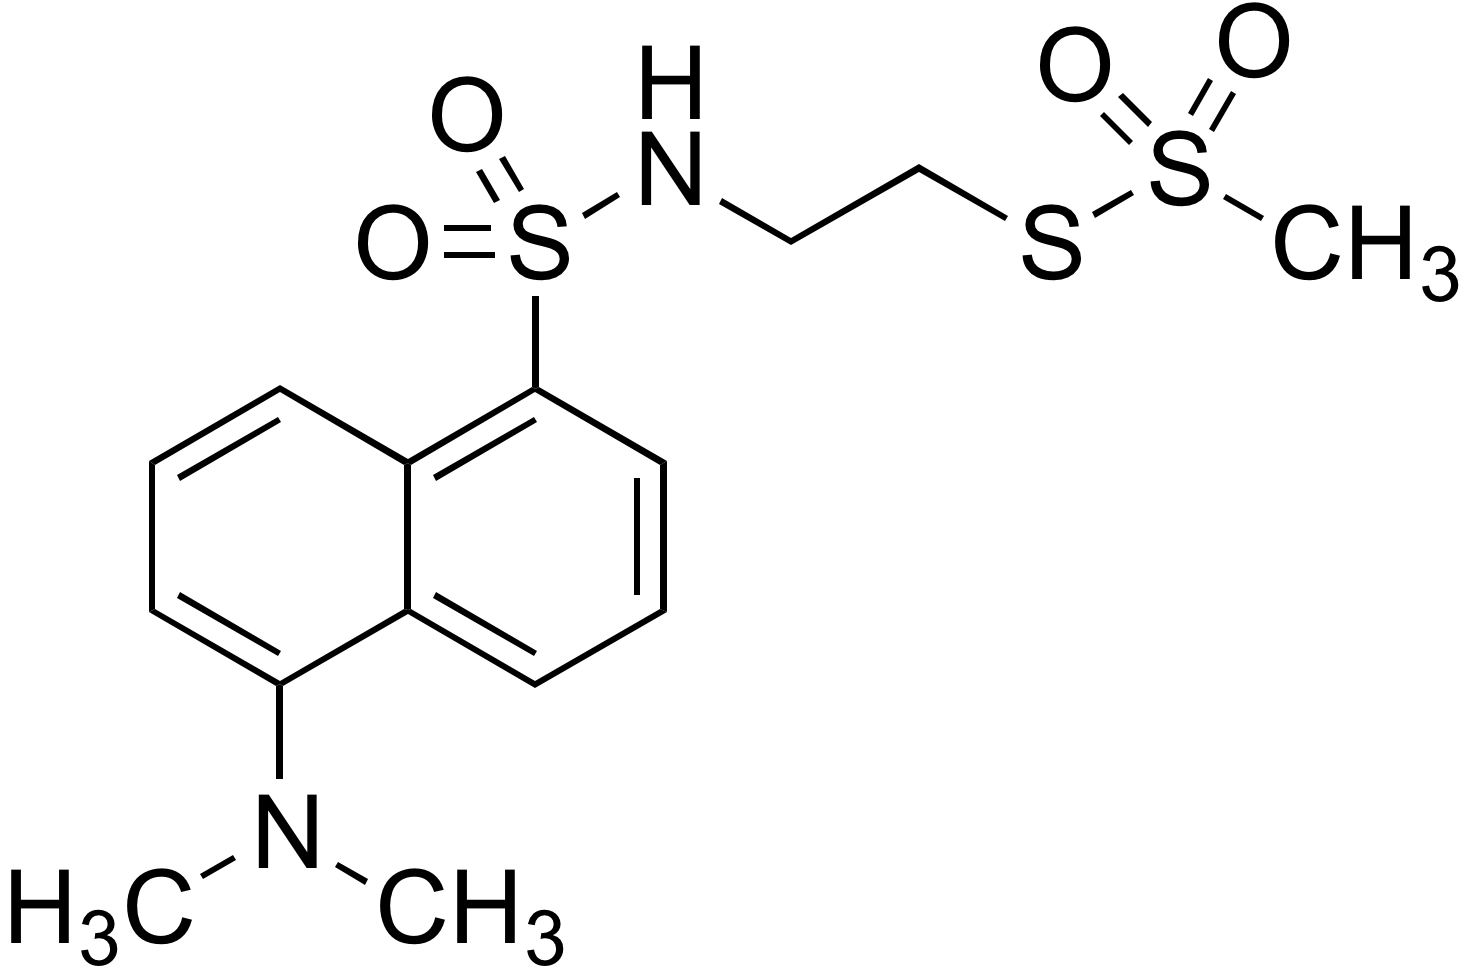 Dansylamidoethyl methanethiosulfonate